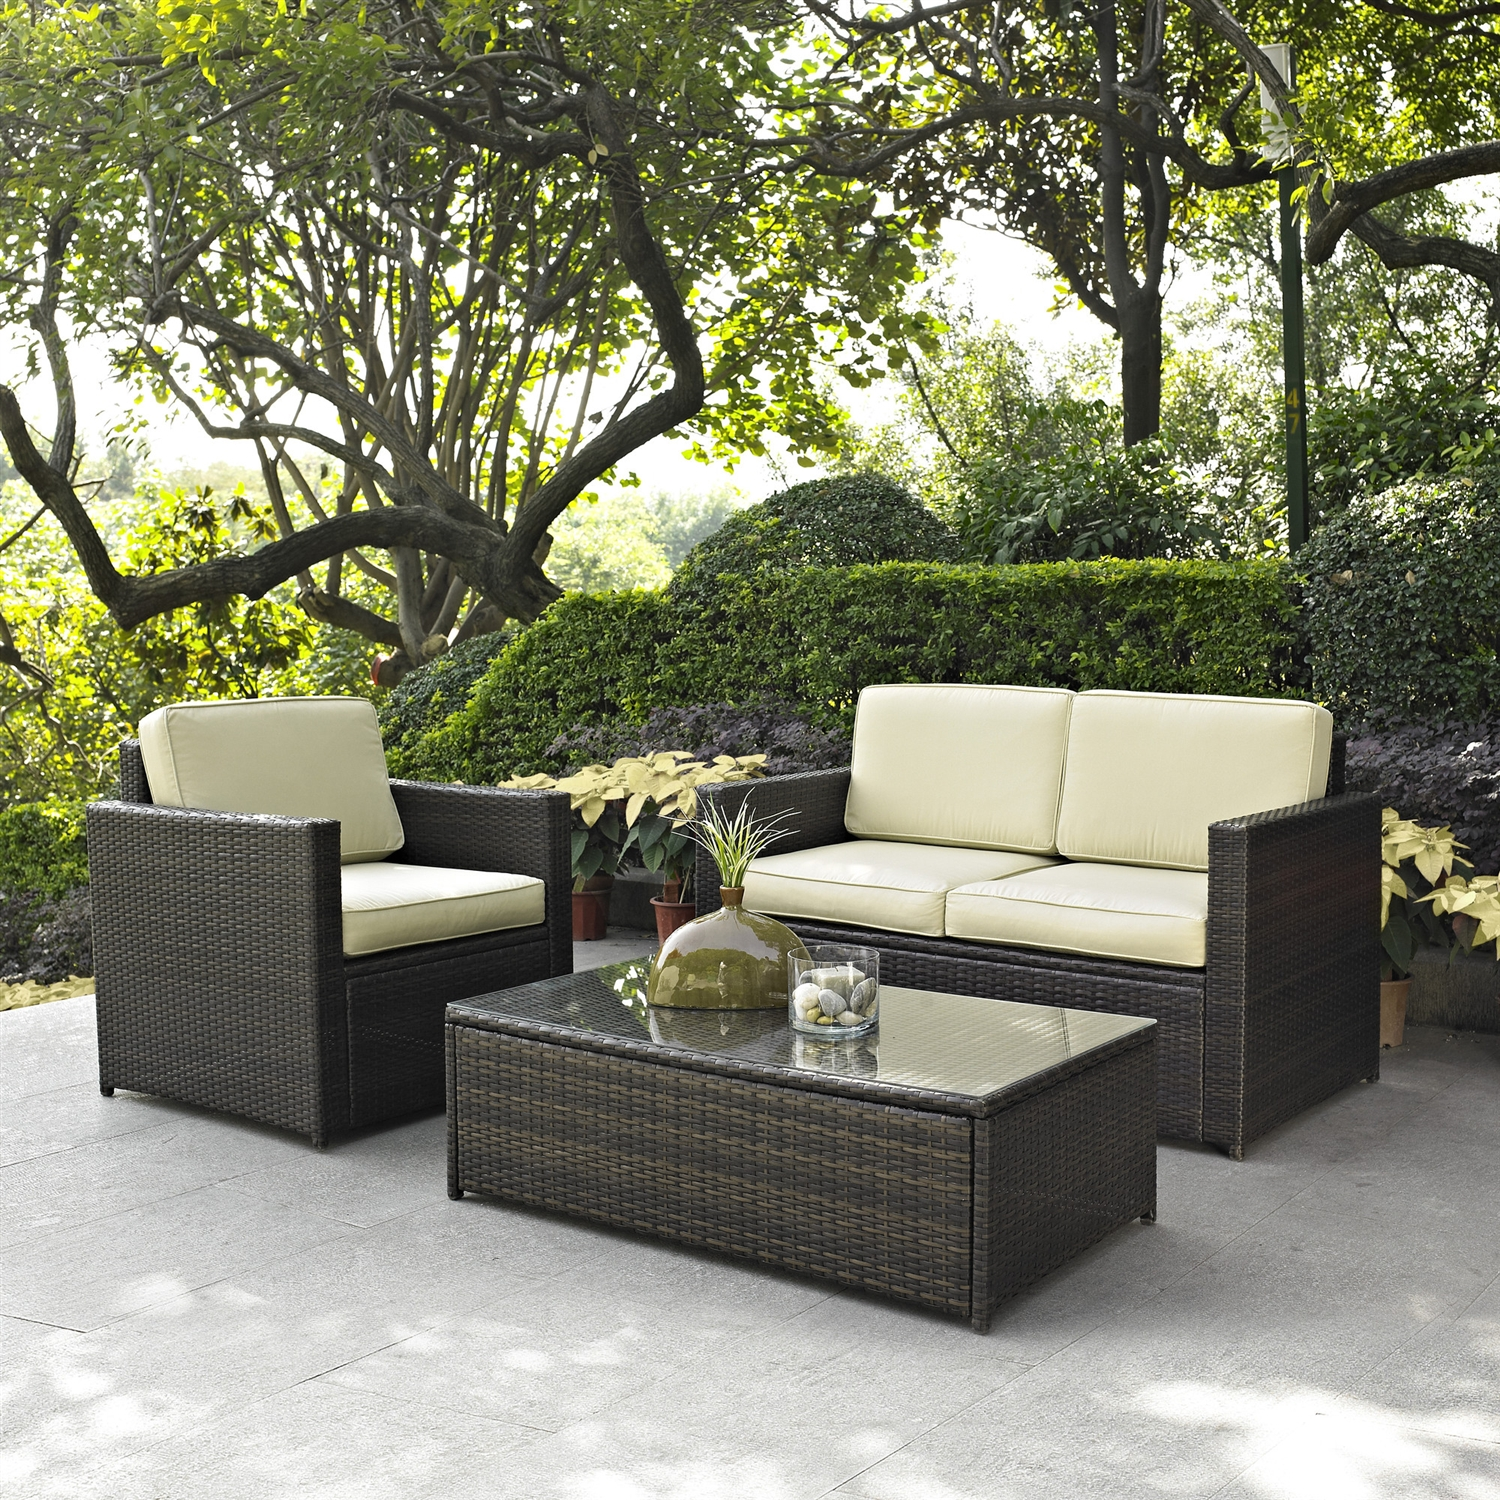 3 Piece Outdoor Patio Furniture Set With Chair Loveseat And Cocktail